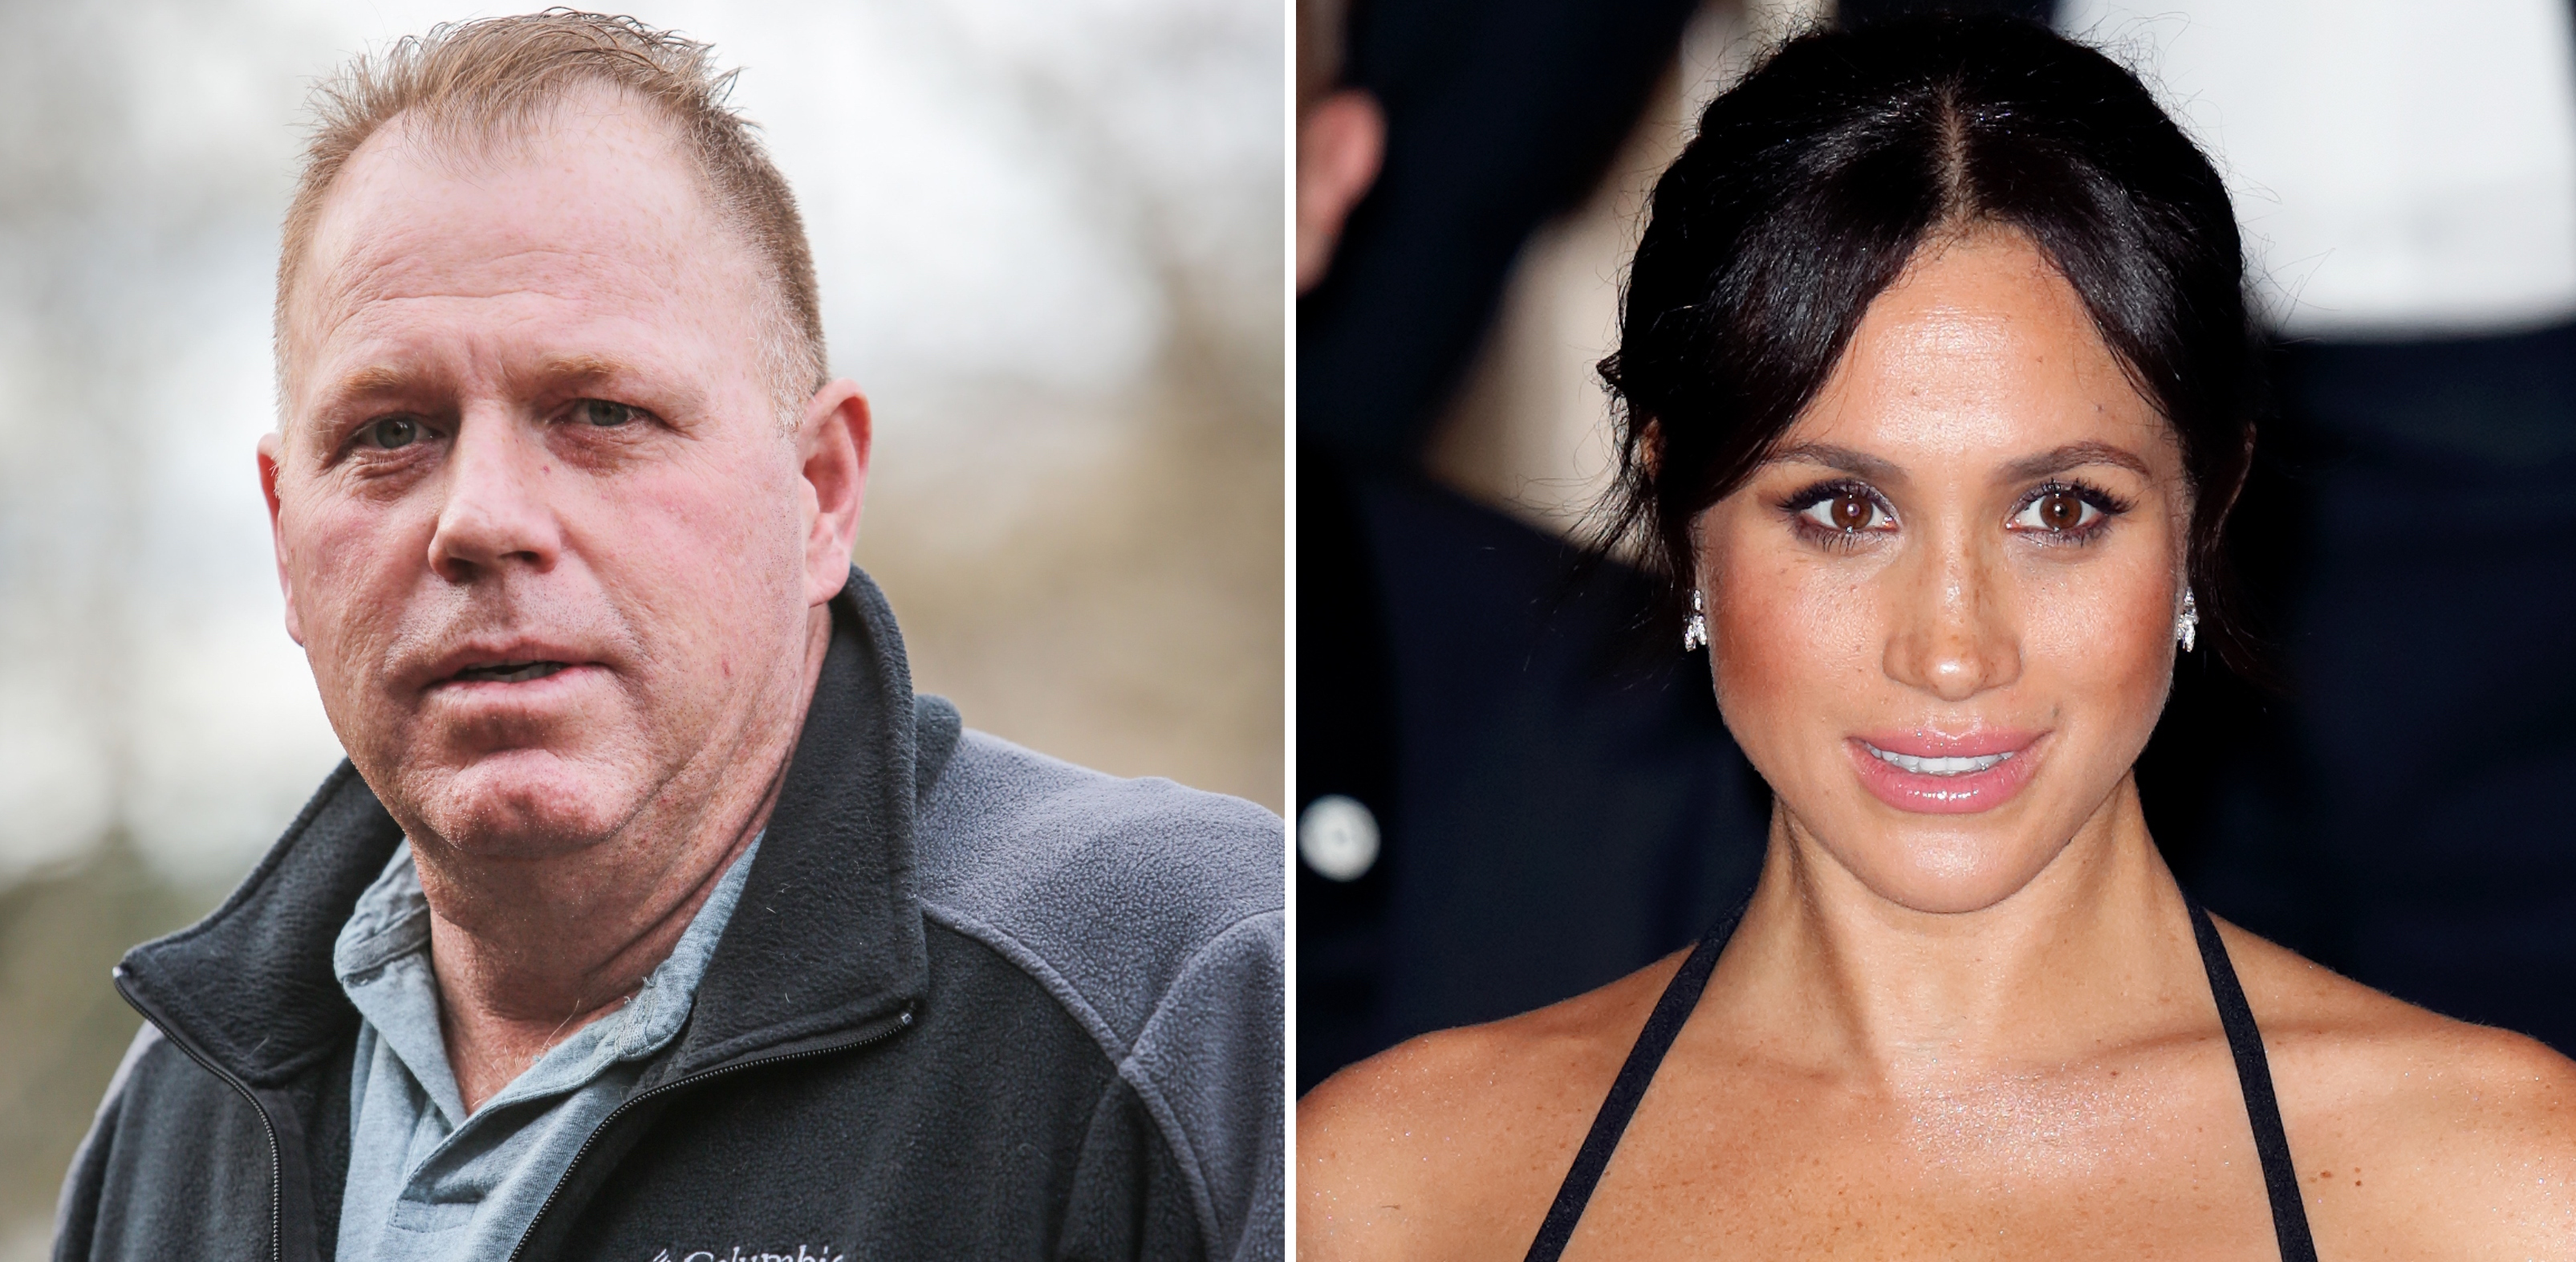 Meghan Markle's Half-Brother, Thomas Markle Jr., Hopes Baby Archie Will Bring Their Family 'Back Together'